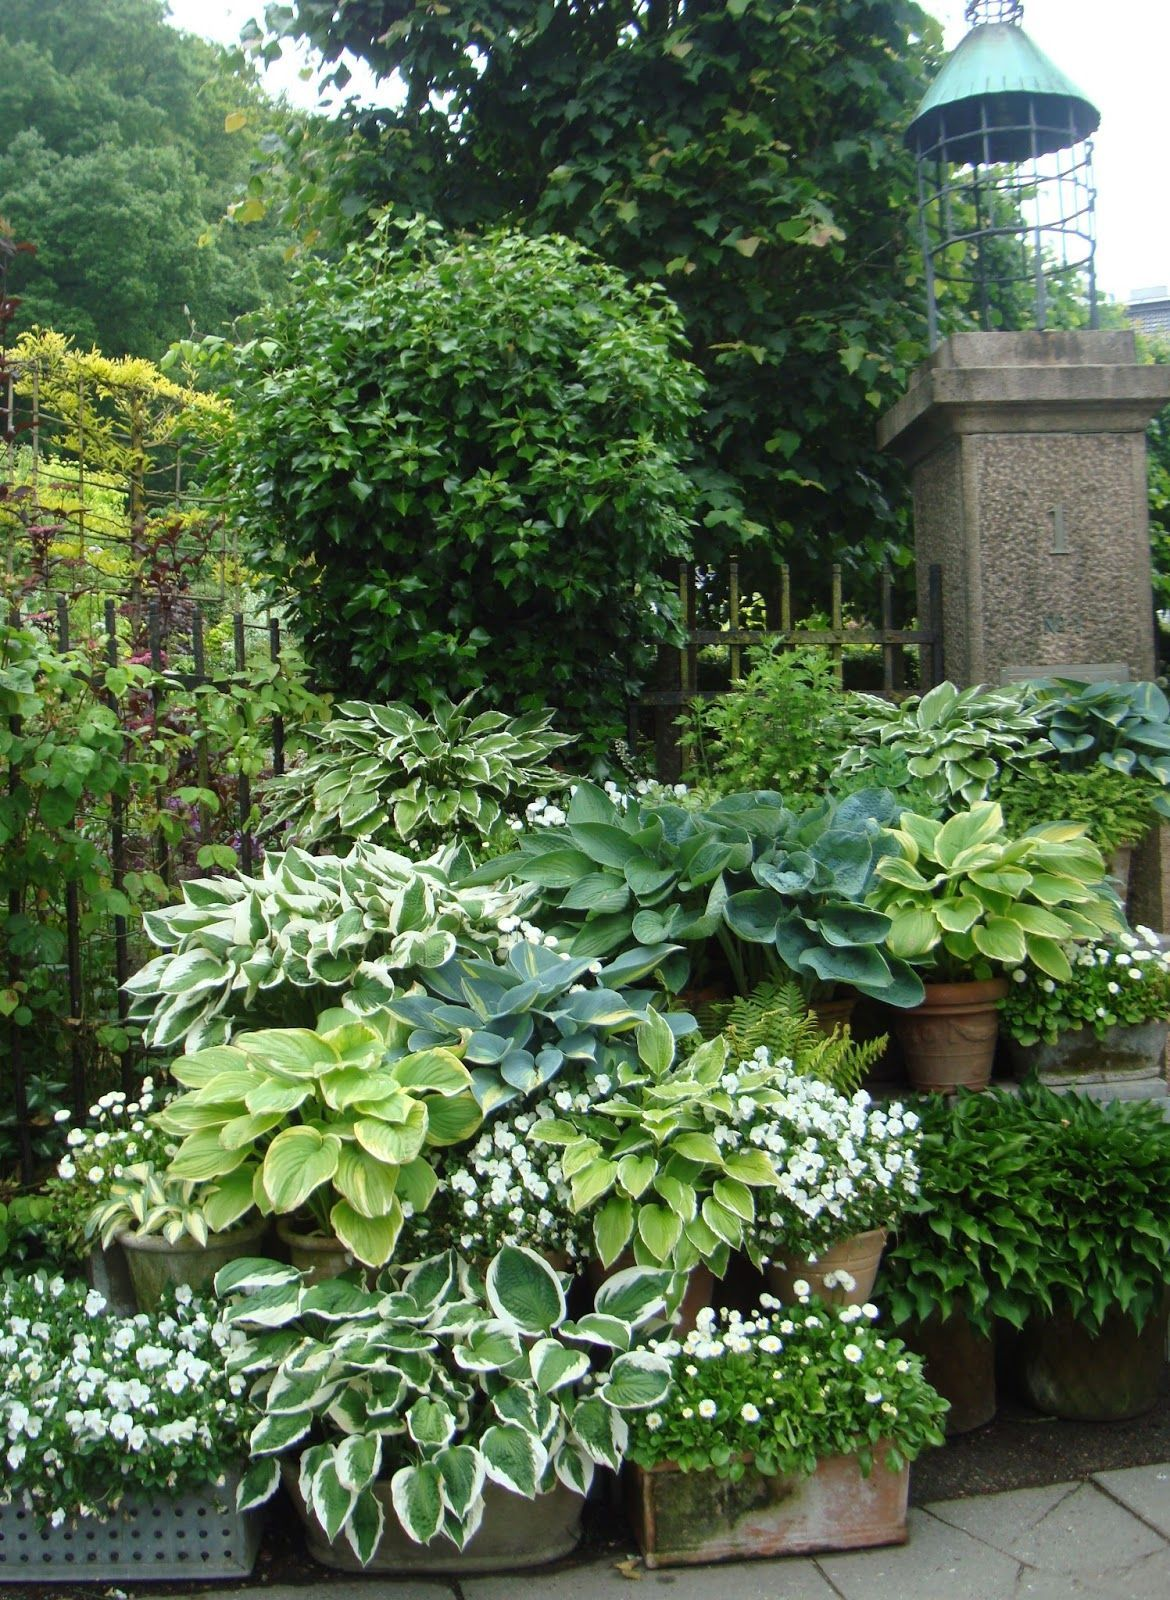 Shady Garden Ideas Archives - Page 2 of 11 - My New Gardening Plan ...